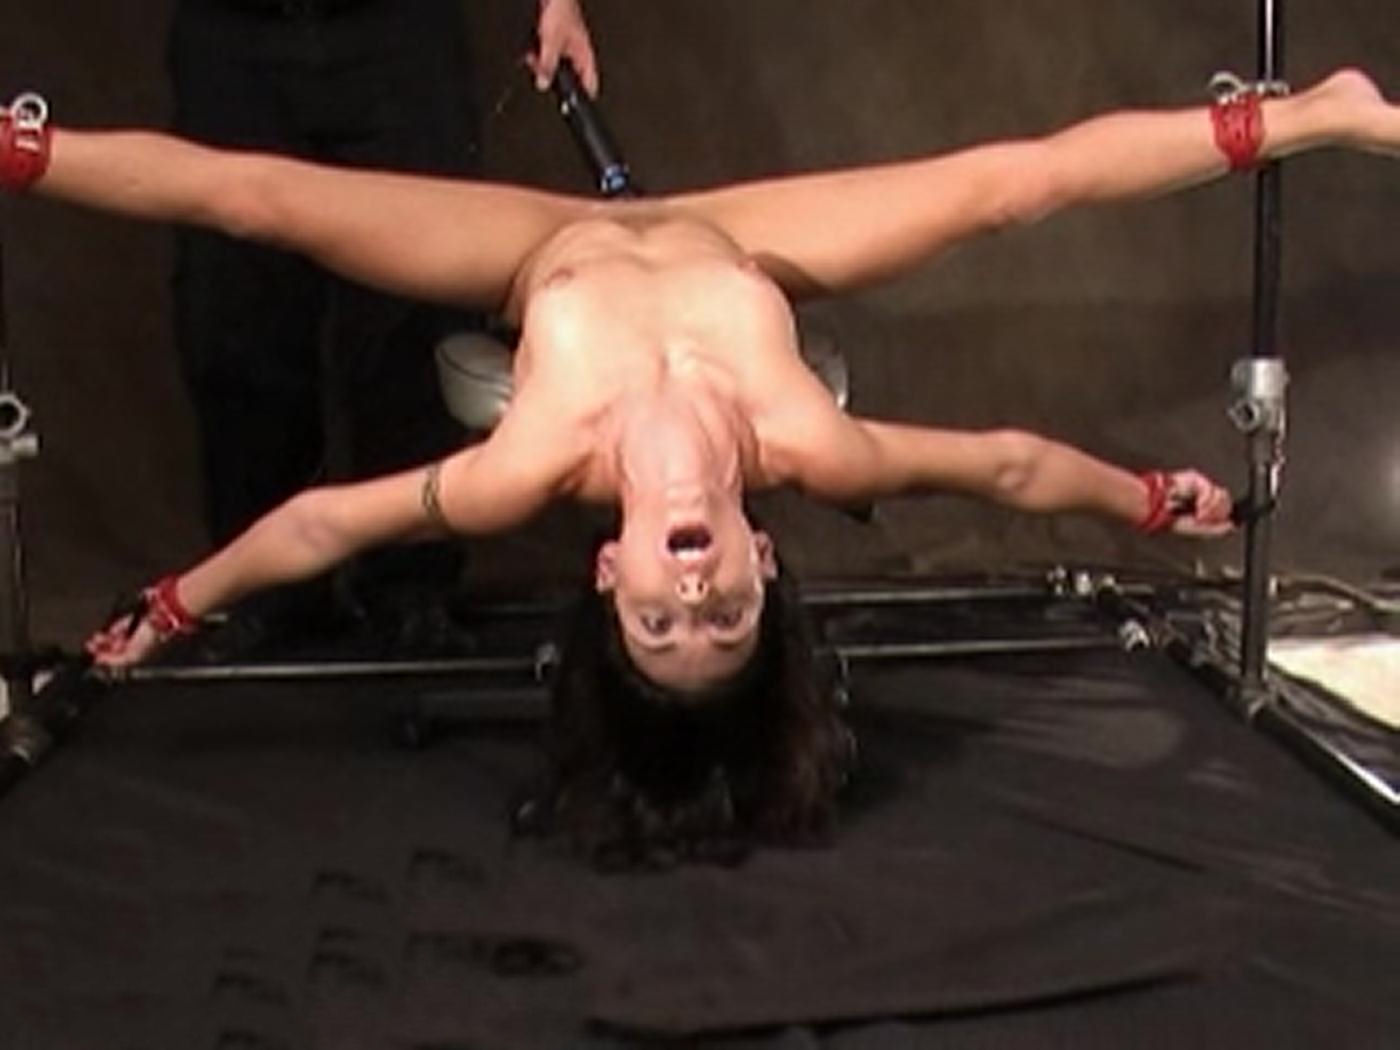 strange will bondage female dominate can help